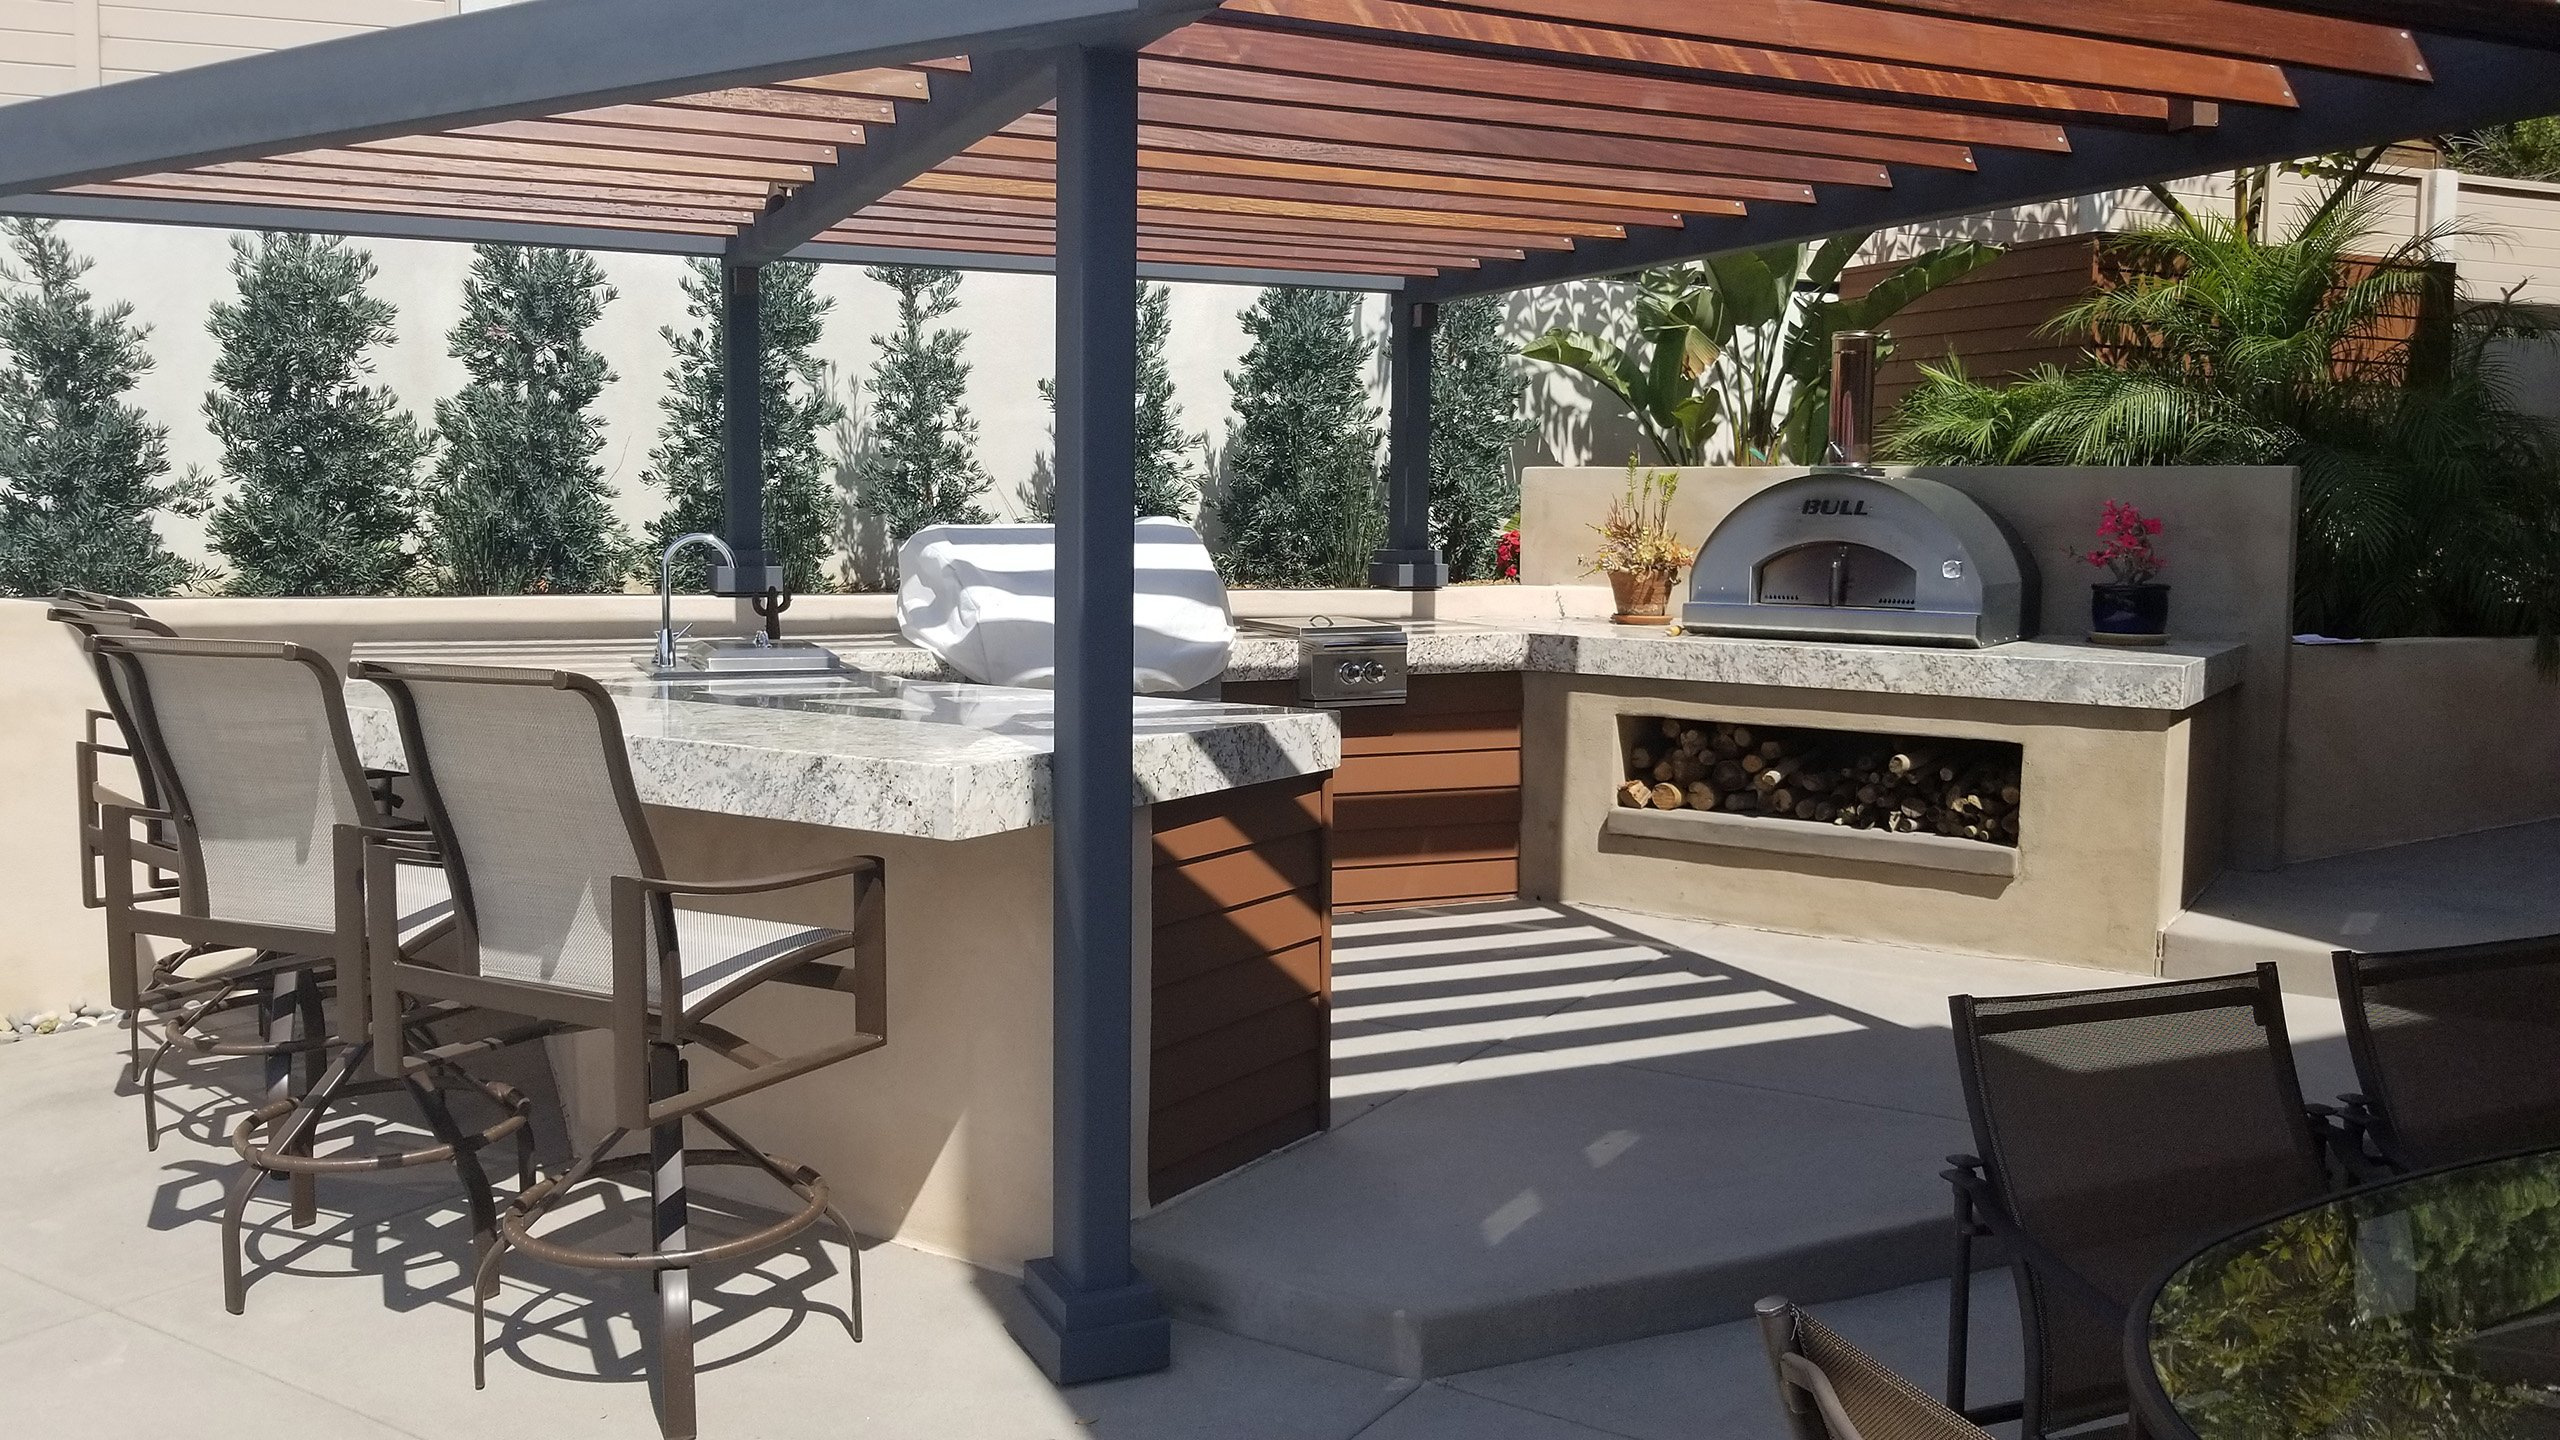 Outdoor kitchen construction with pizza oven and bar